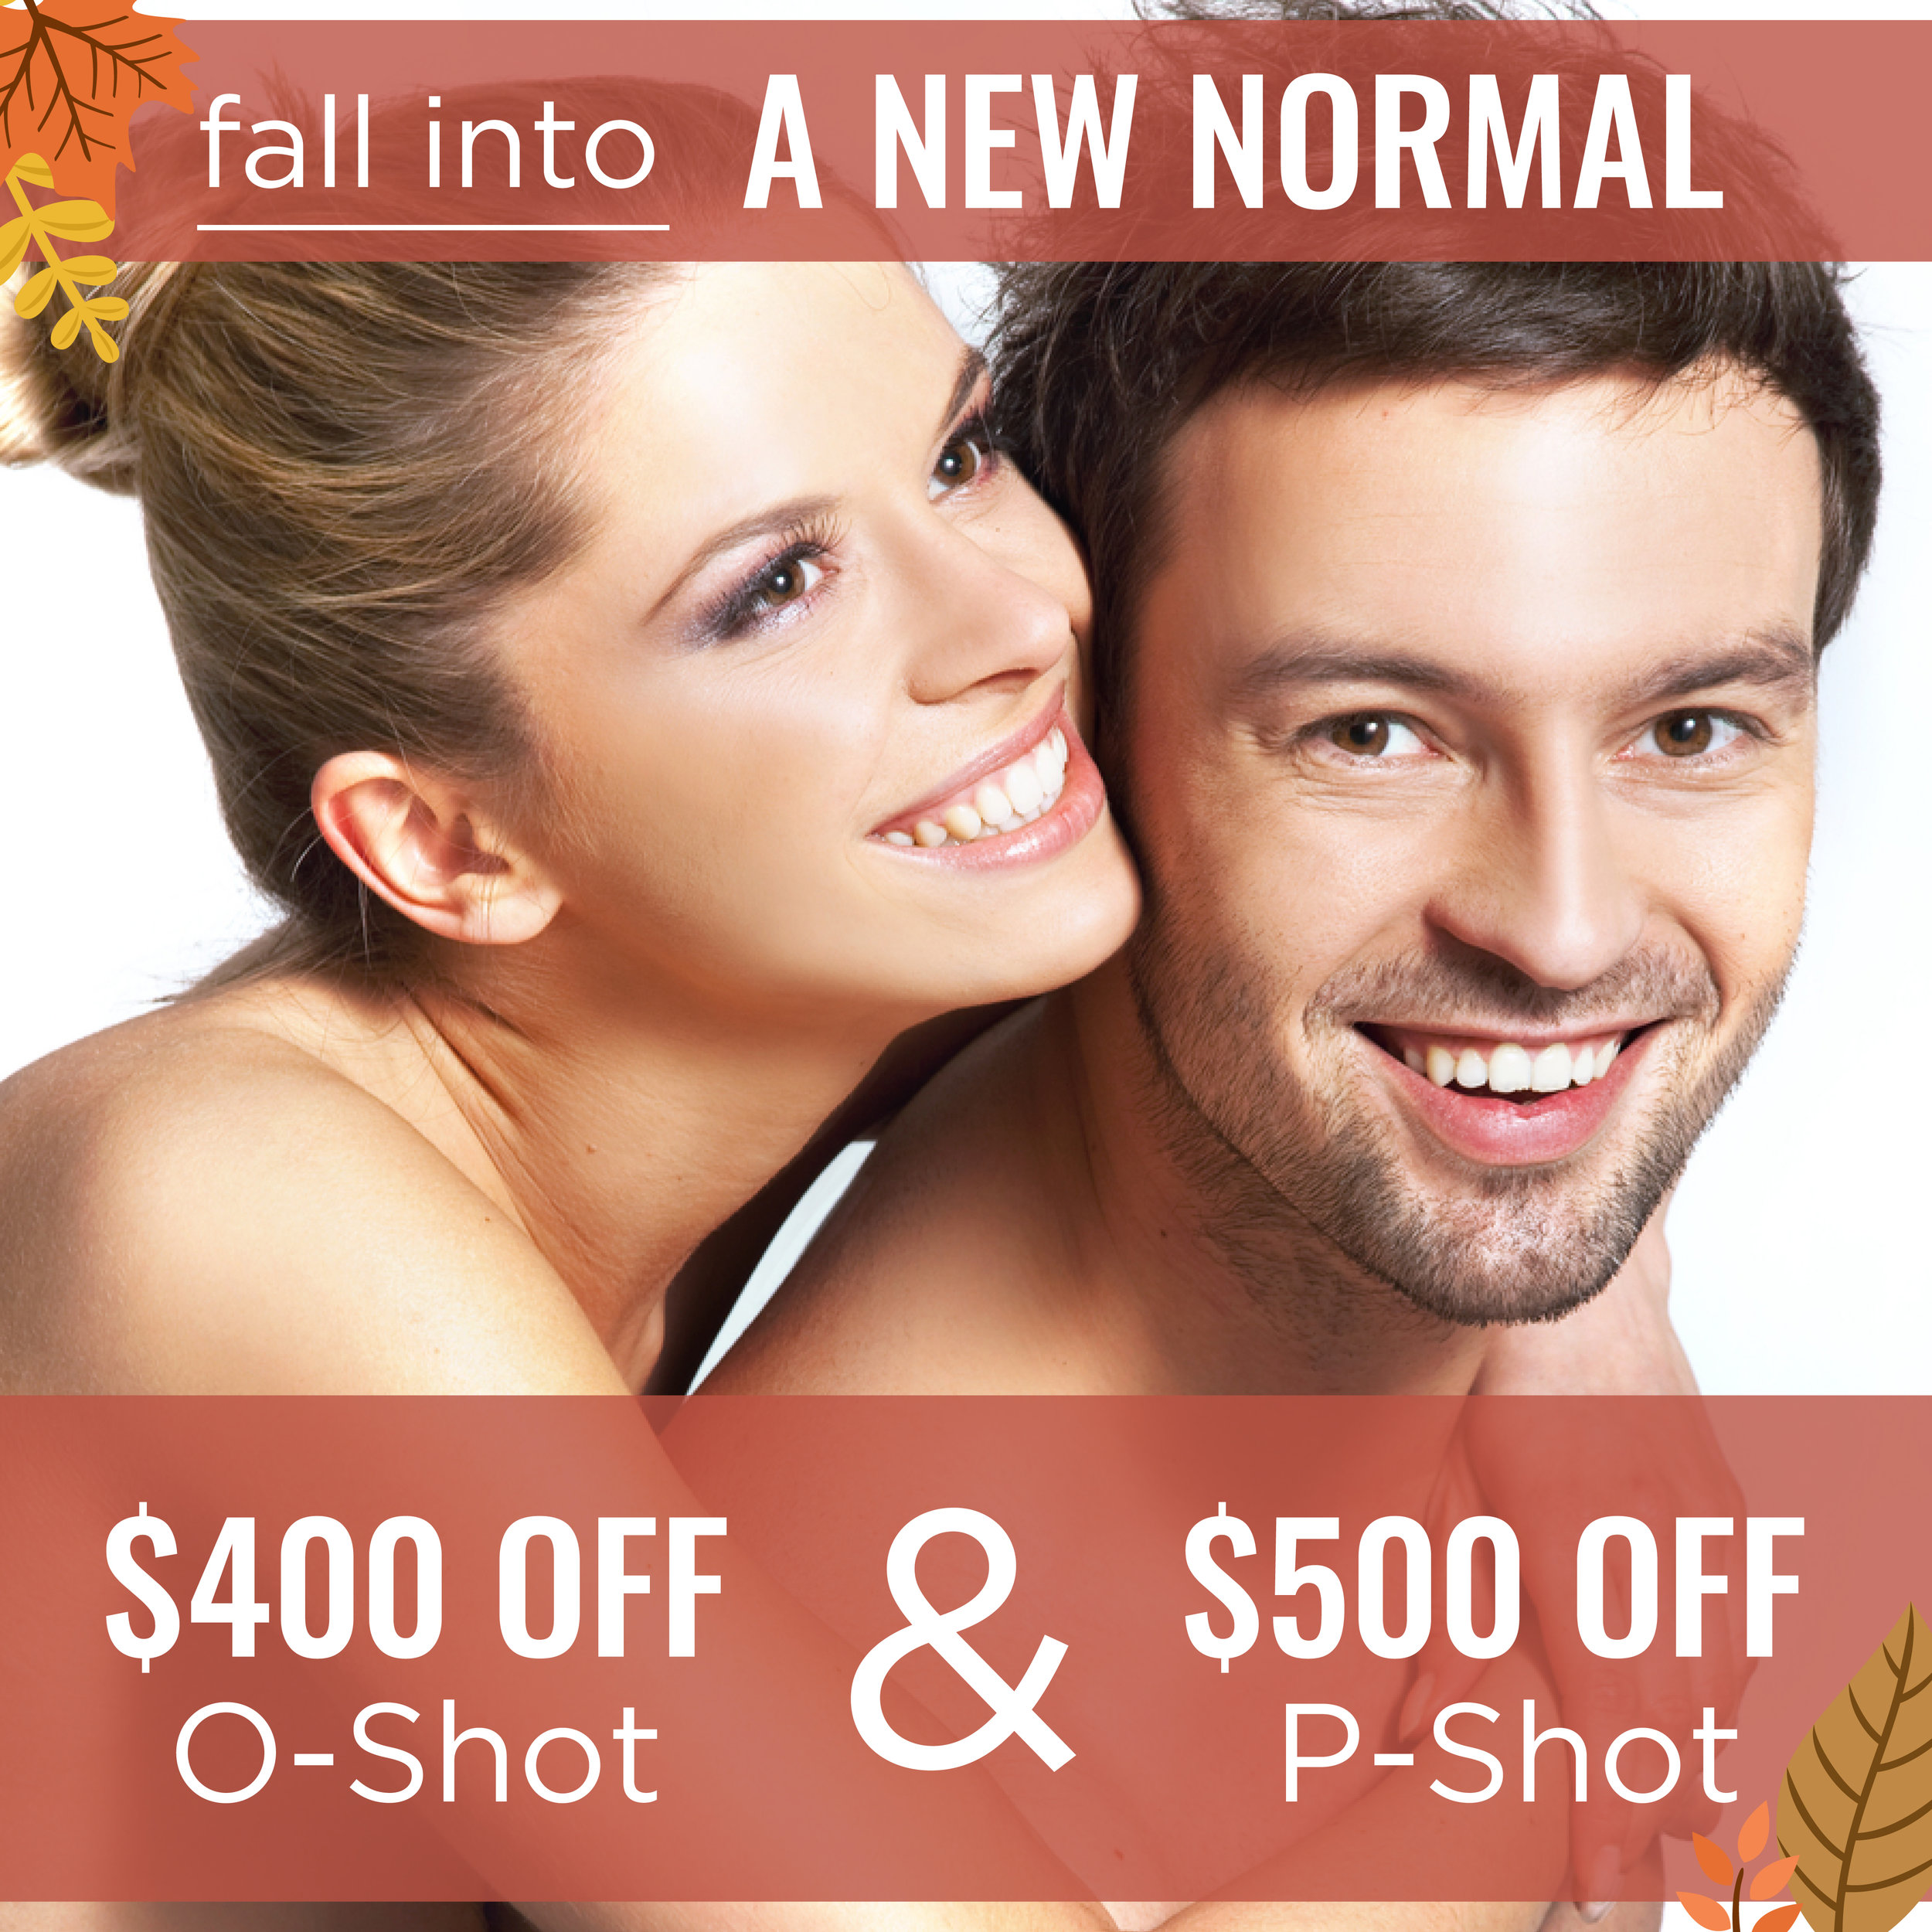 O-Shot and P-Shot specials in San Antonio, TX. Low libido is never fun but o-shot and p-shot can help.